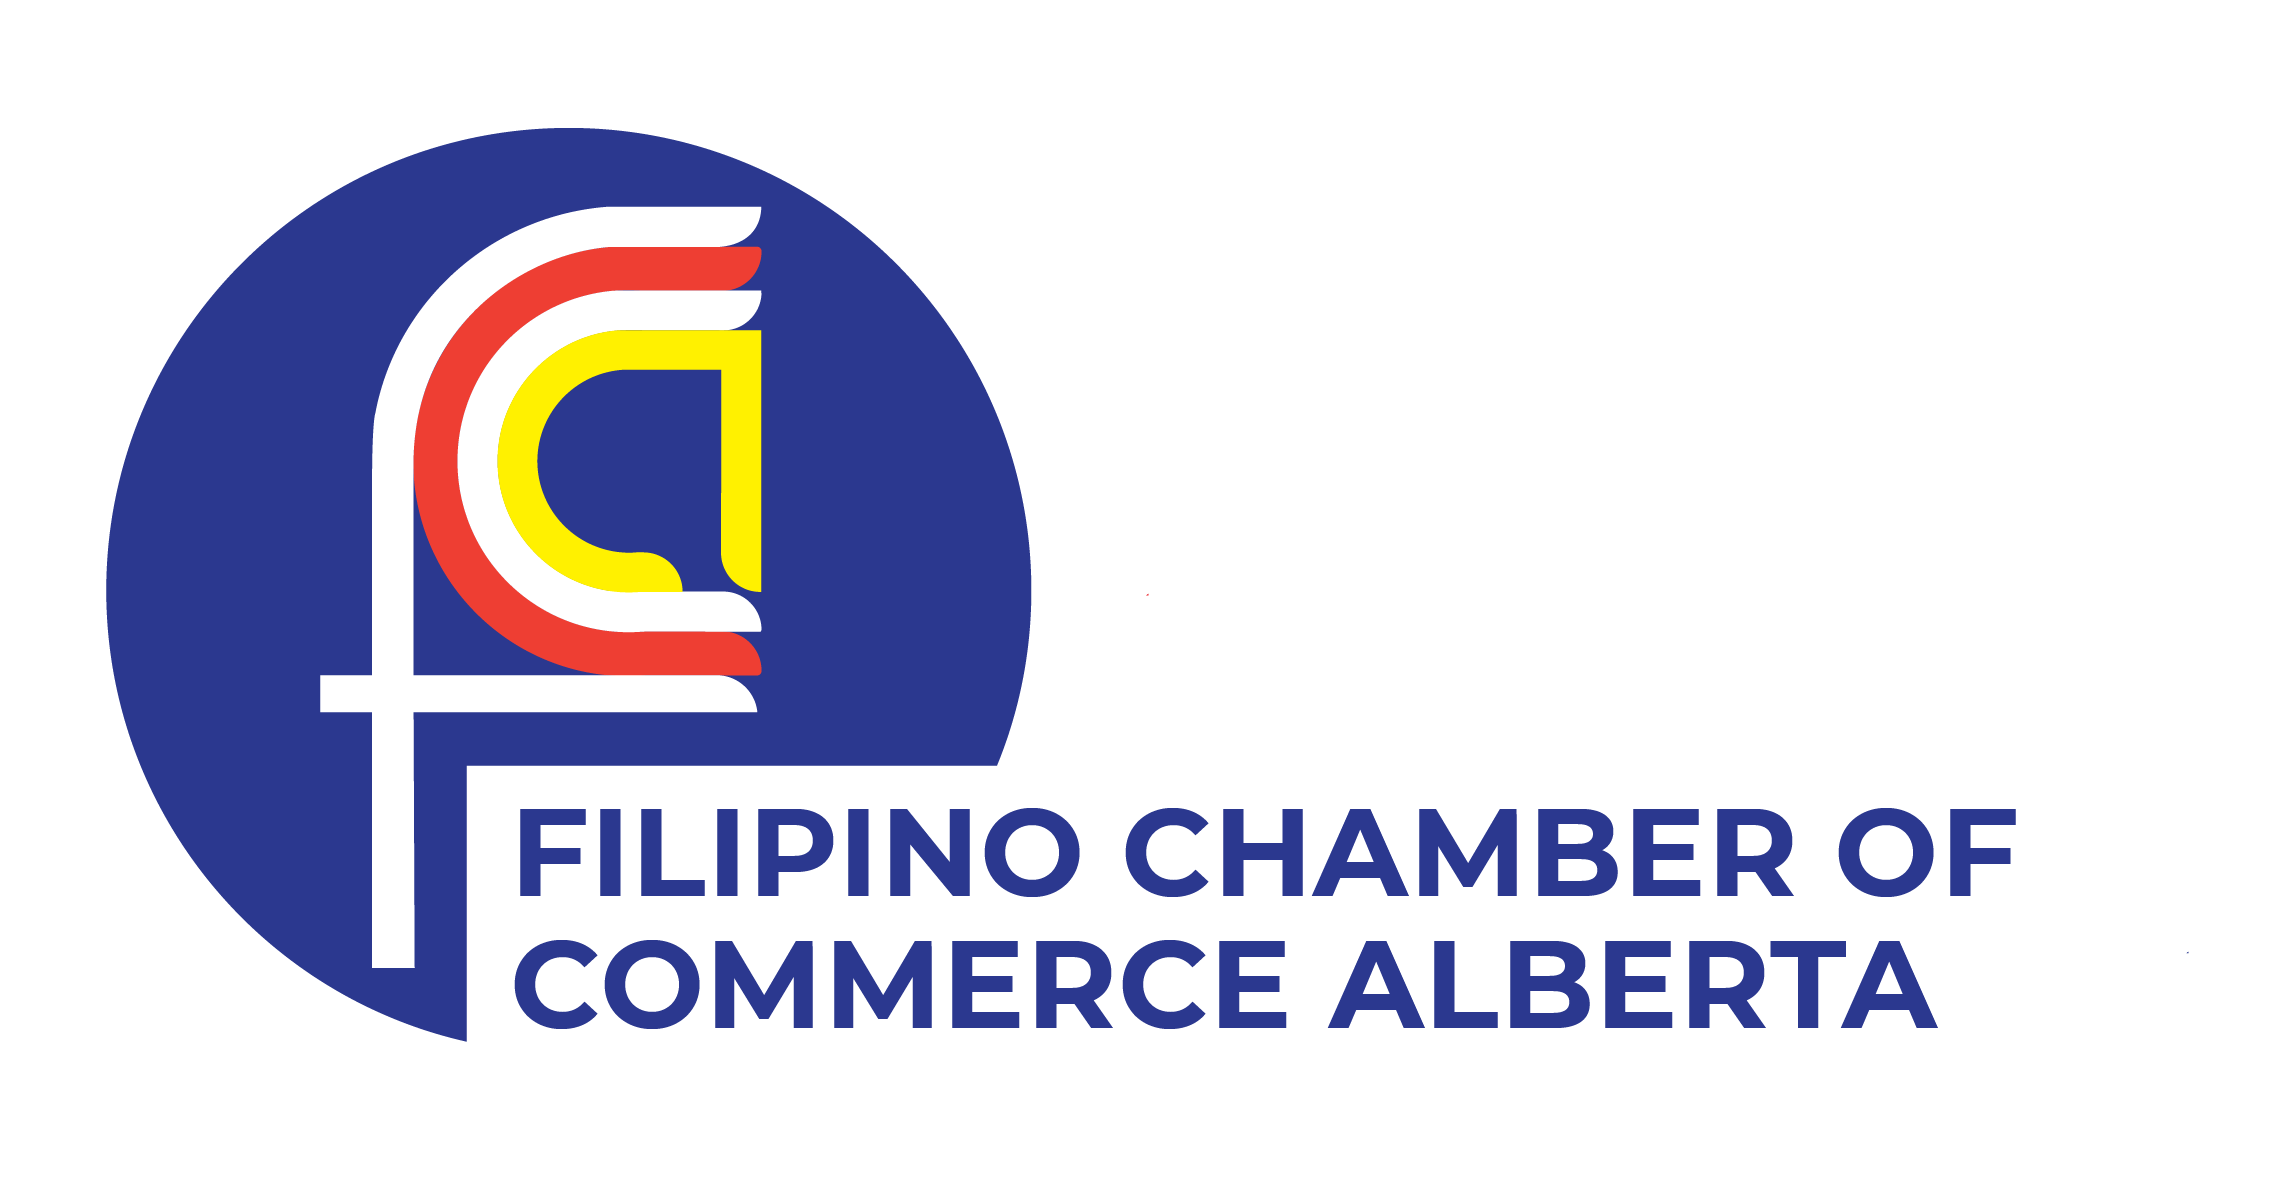 Filipino Chamber of Commerce Alberta